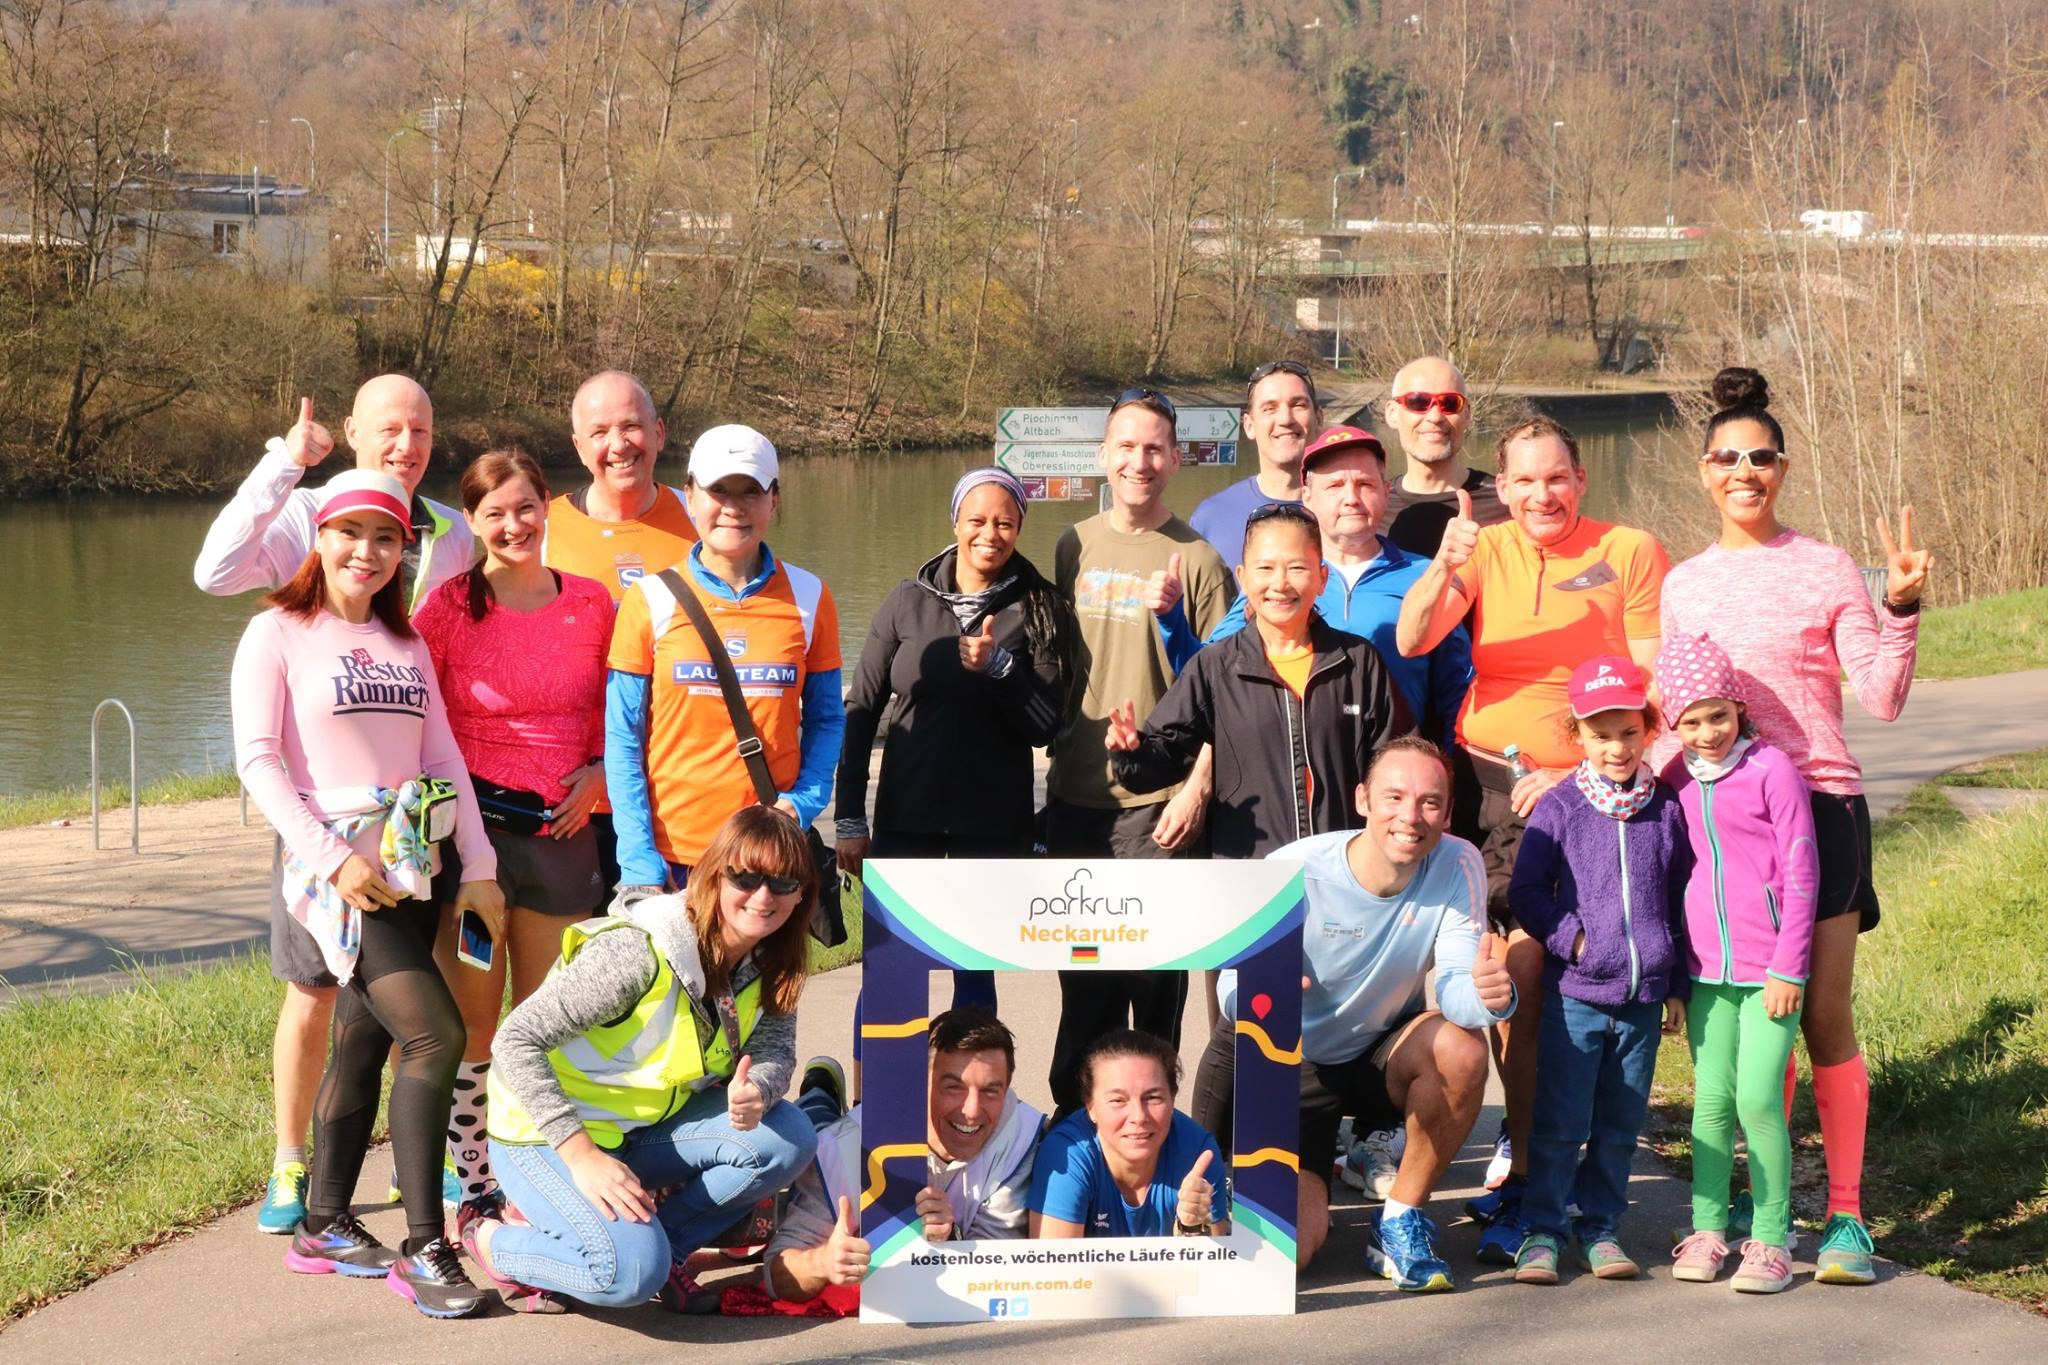 011 2019 April Germany Neckarufer parkrun my new and current parkrun family